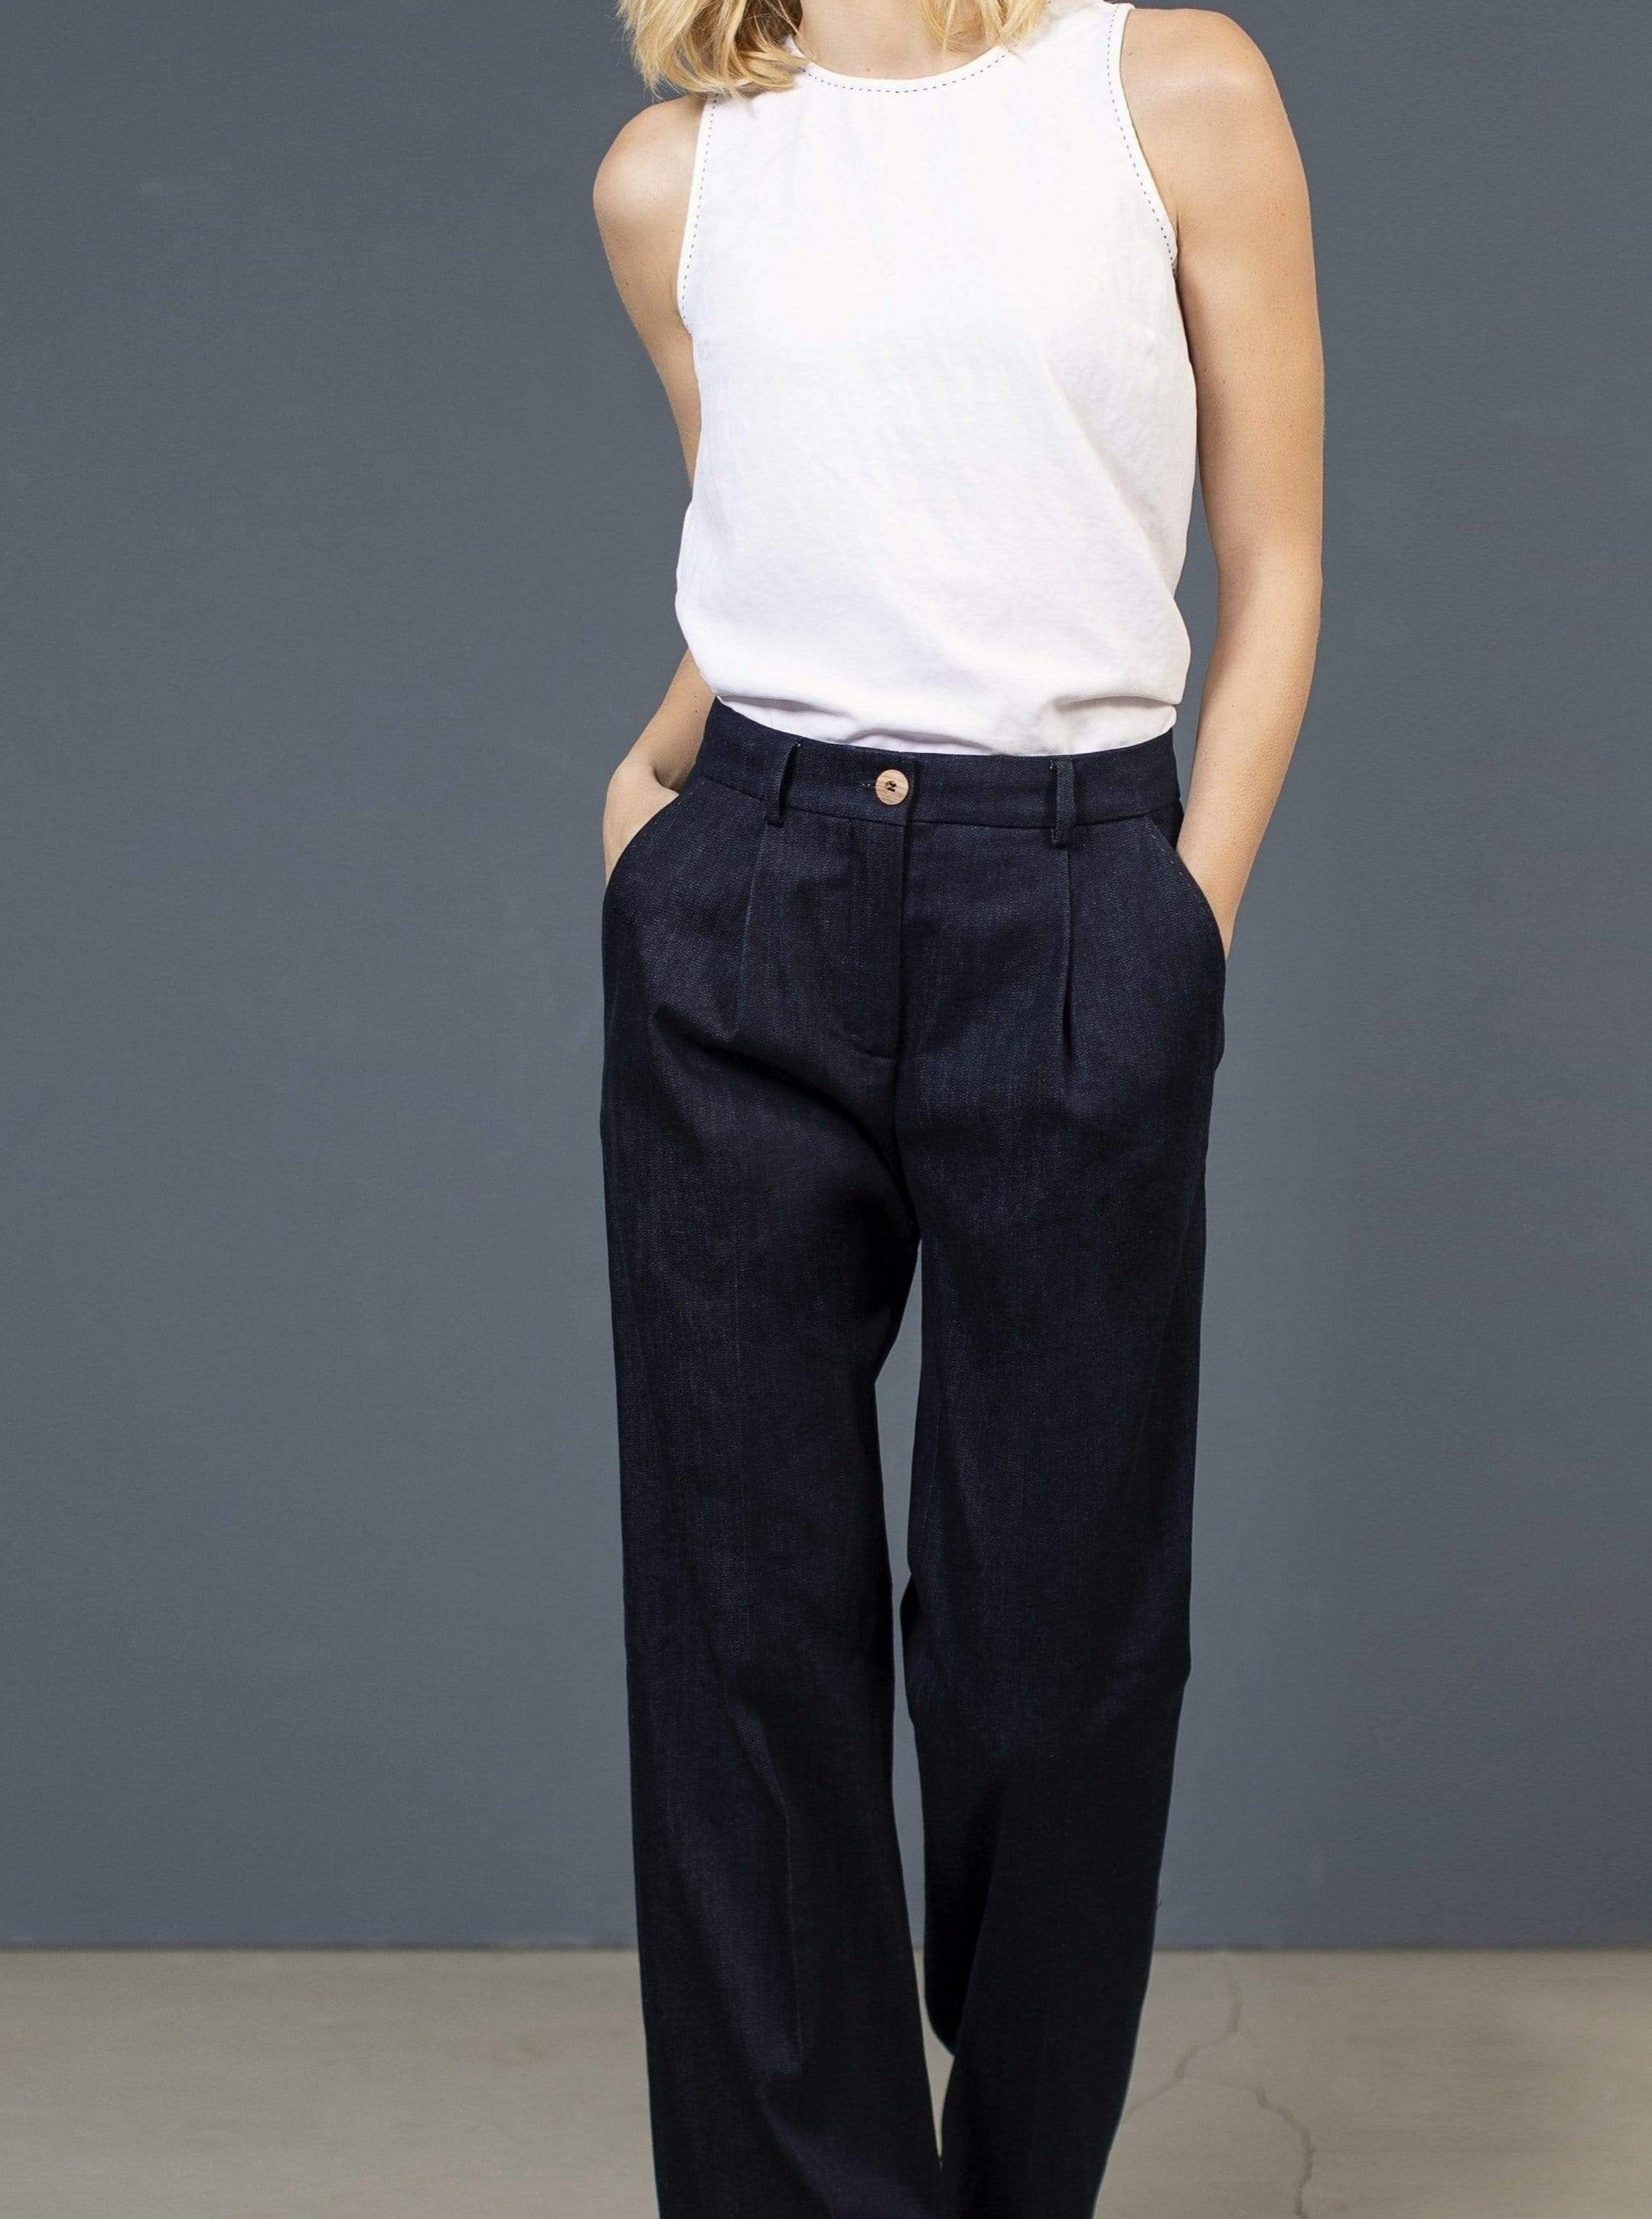 le pantalon de costume bleu AMAL Pants. Coton organique. mode durable mode éthique